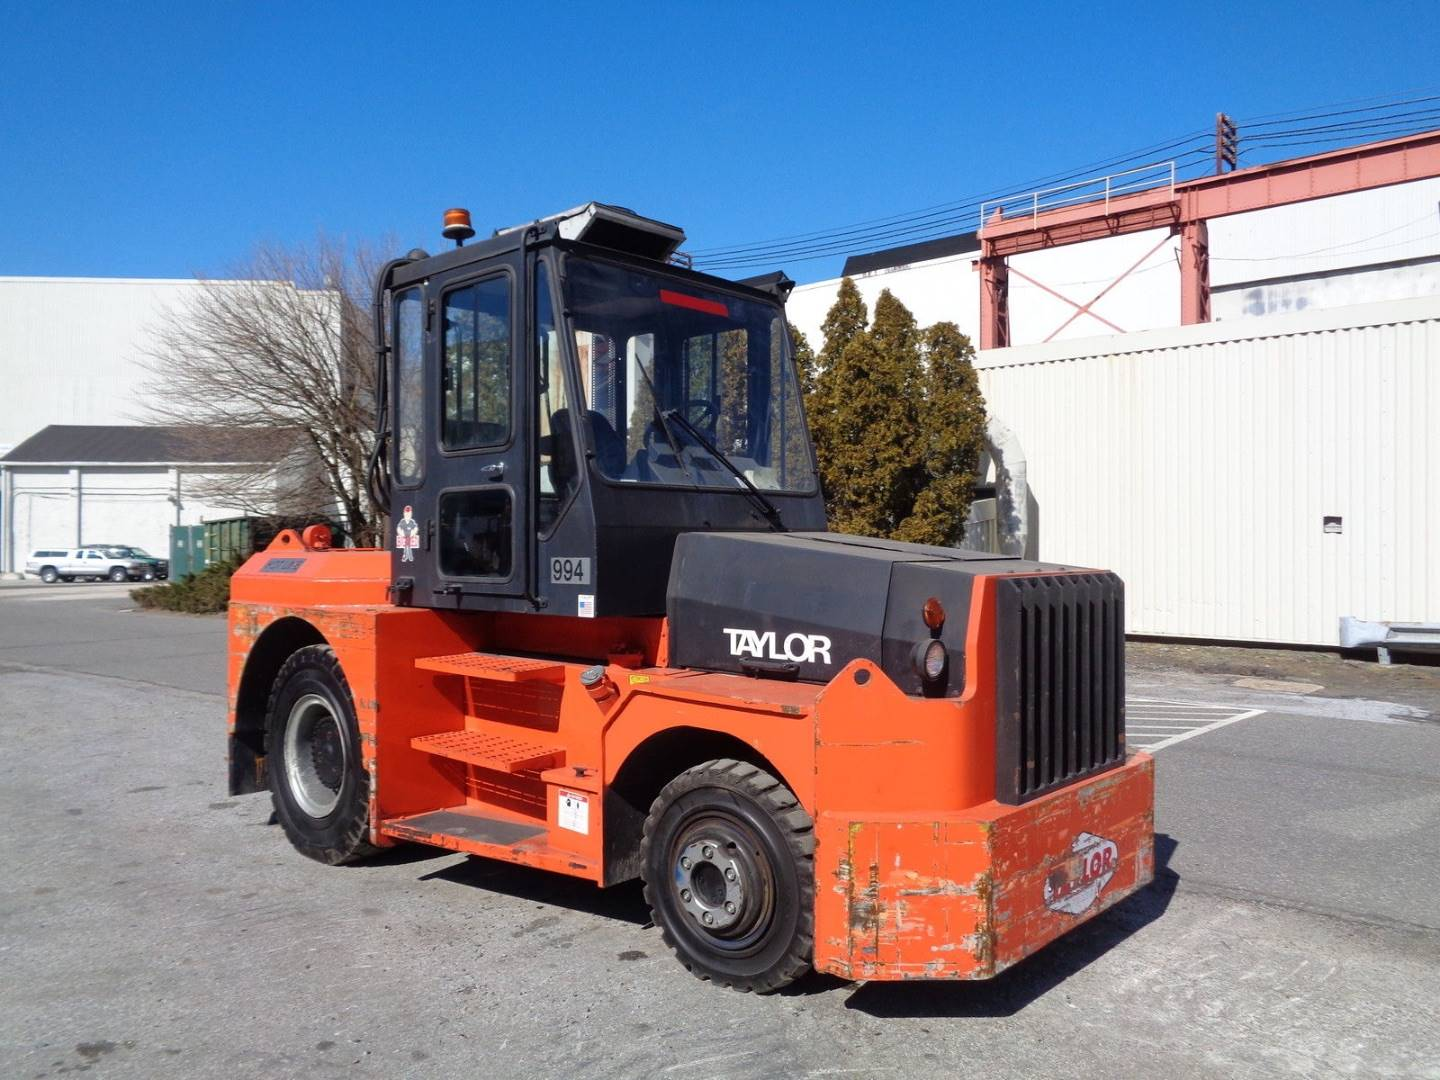 Diesel Operated Tow Tractor : Diesel taylor tt tow tractor